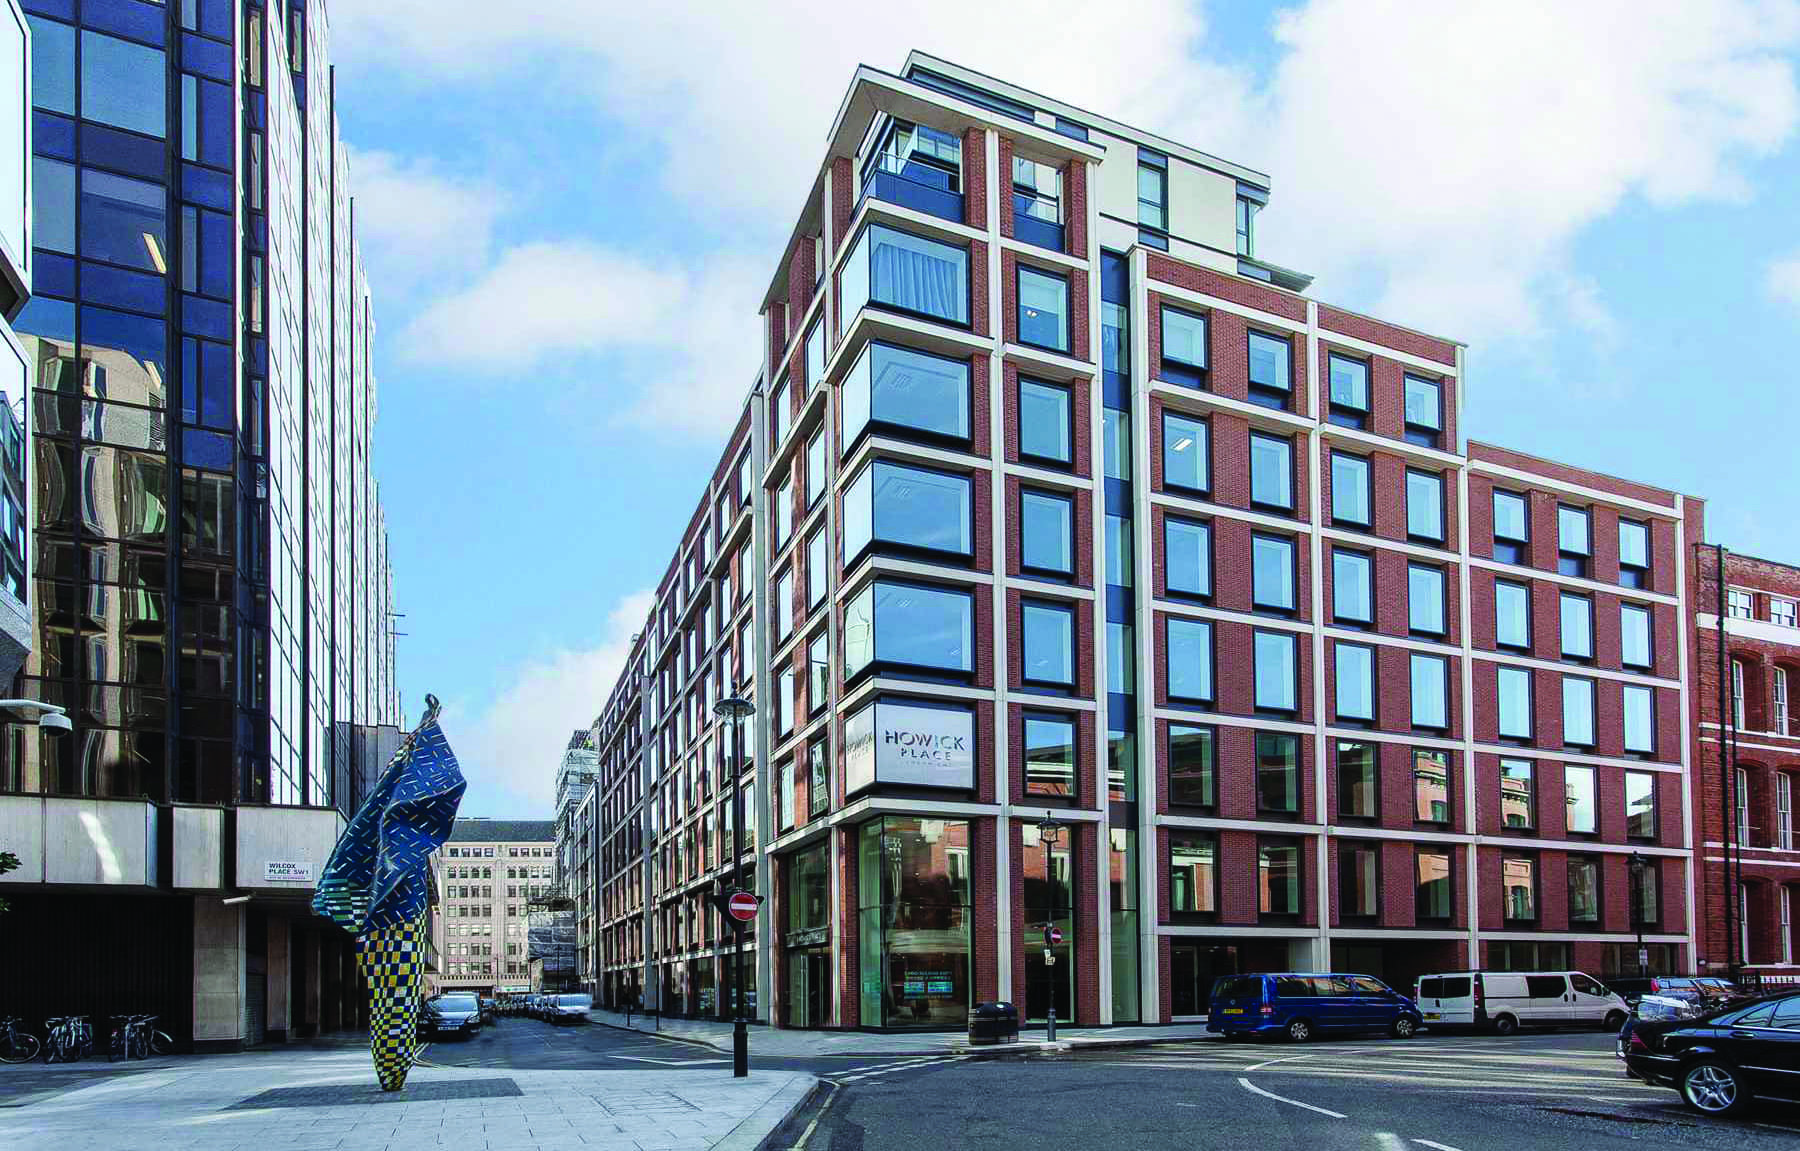 image of howick place building